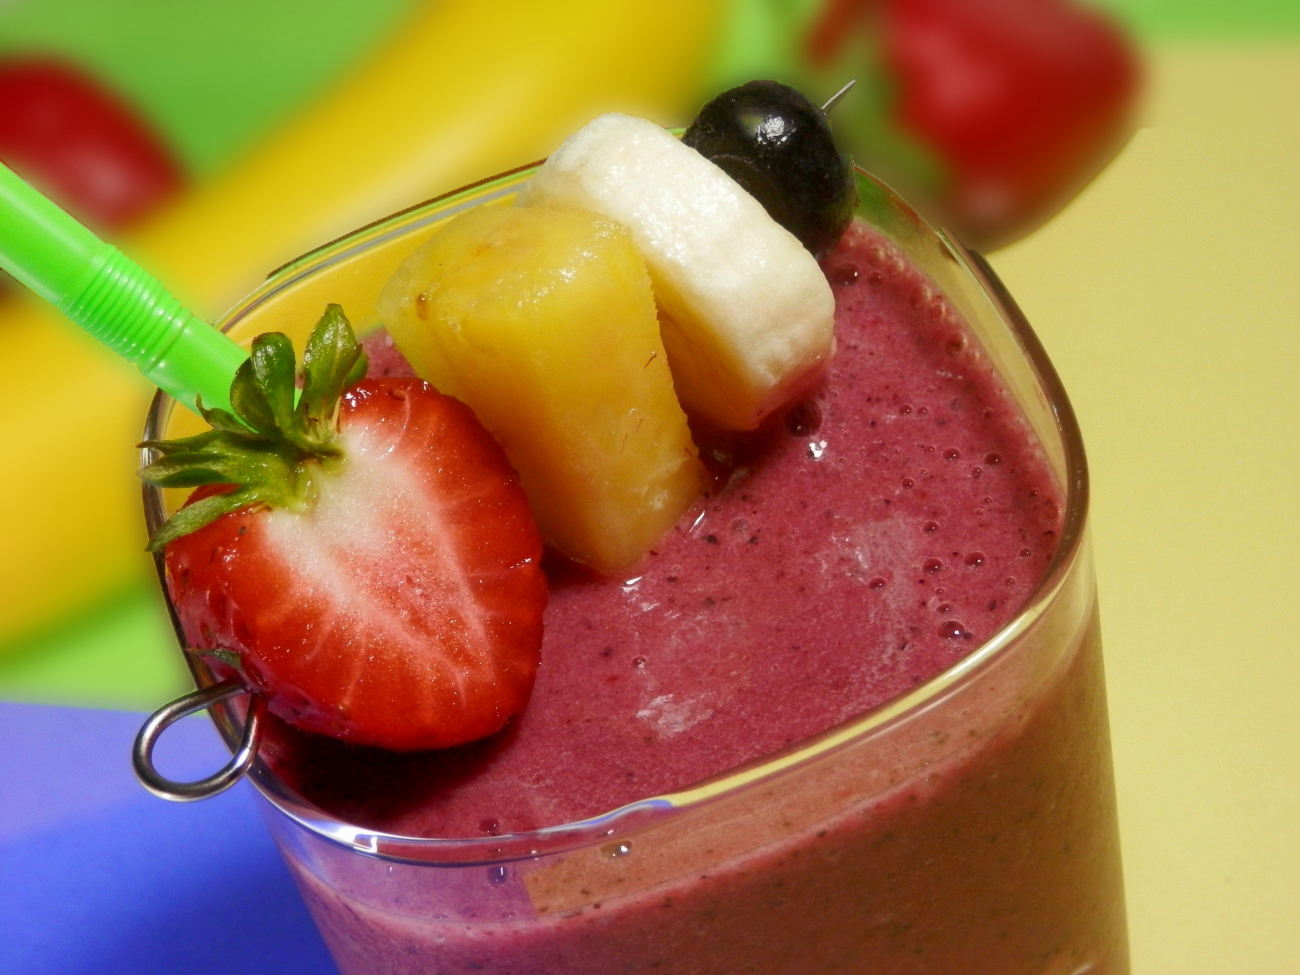 1115731 All-Fruit Smoothies 228854 llgrotts